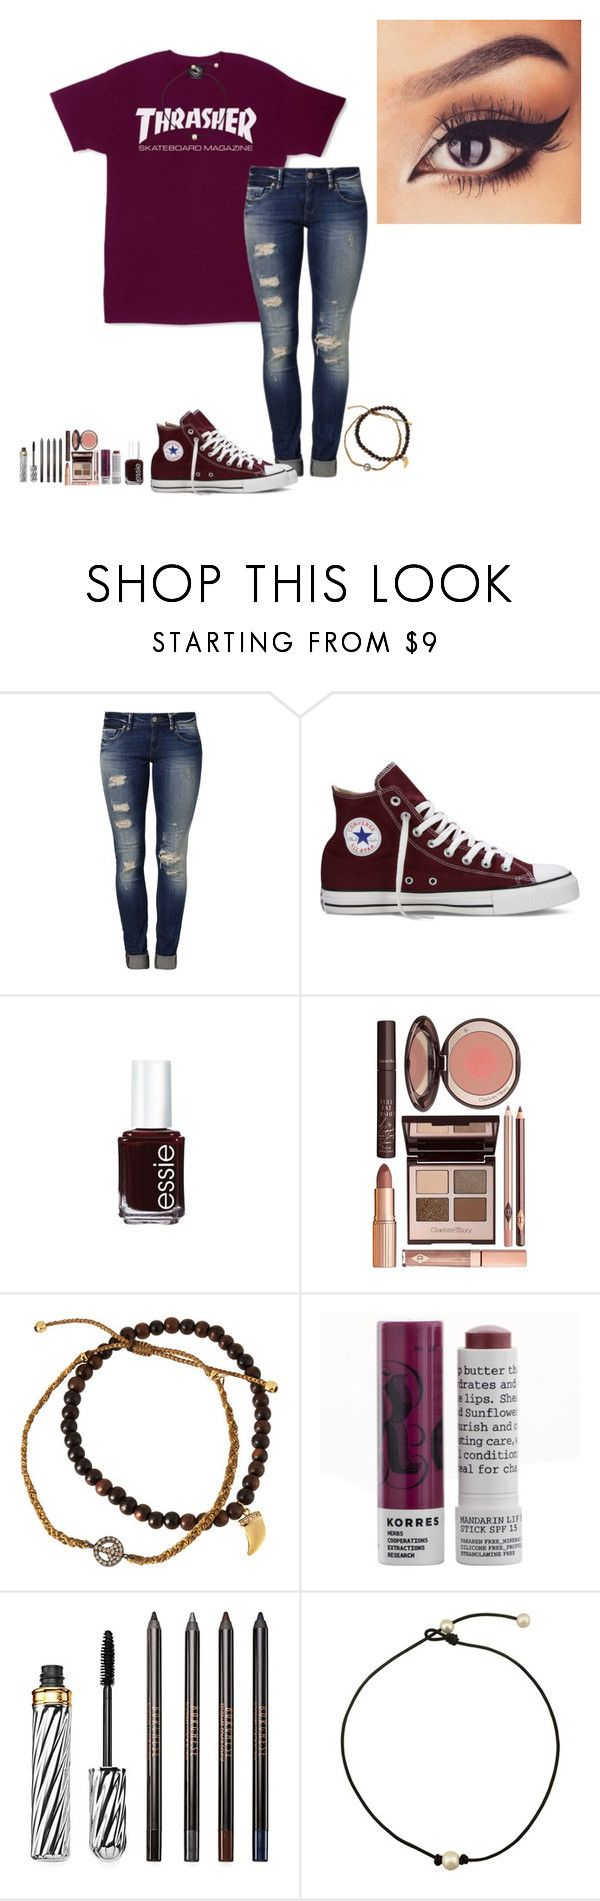 """QOTD:What do you like on your burgers?"" by amaya-leigh ❤ liked on Polyvore featuring Mavi, Converse, Essie, Charlotte Tilbury, Tai, Korres and Borghese"